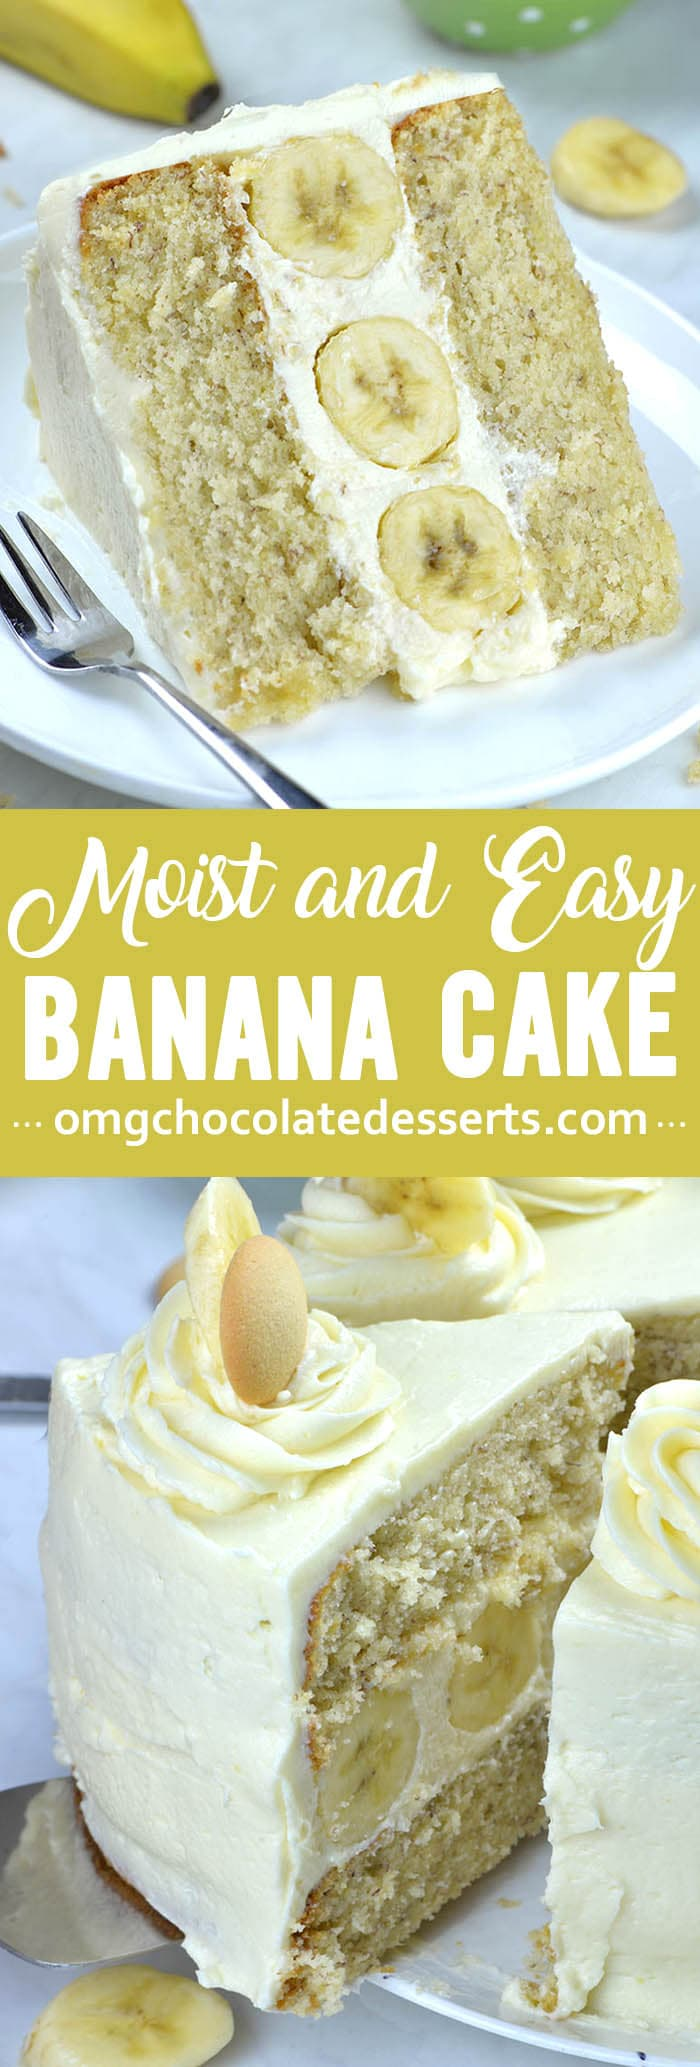 Layered banana cake with addition of whipped cream cheese frosting, stuffed with bananas in the center is perfect treat for banana lovers.